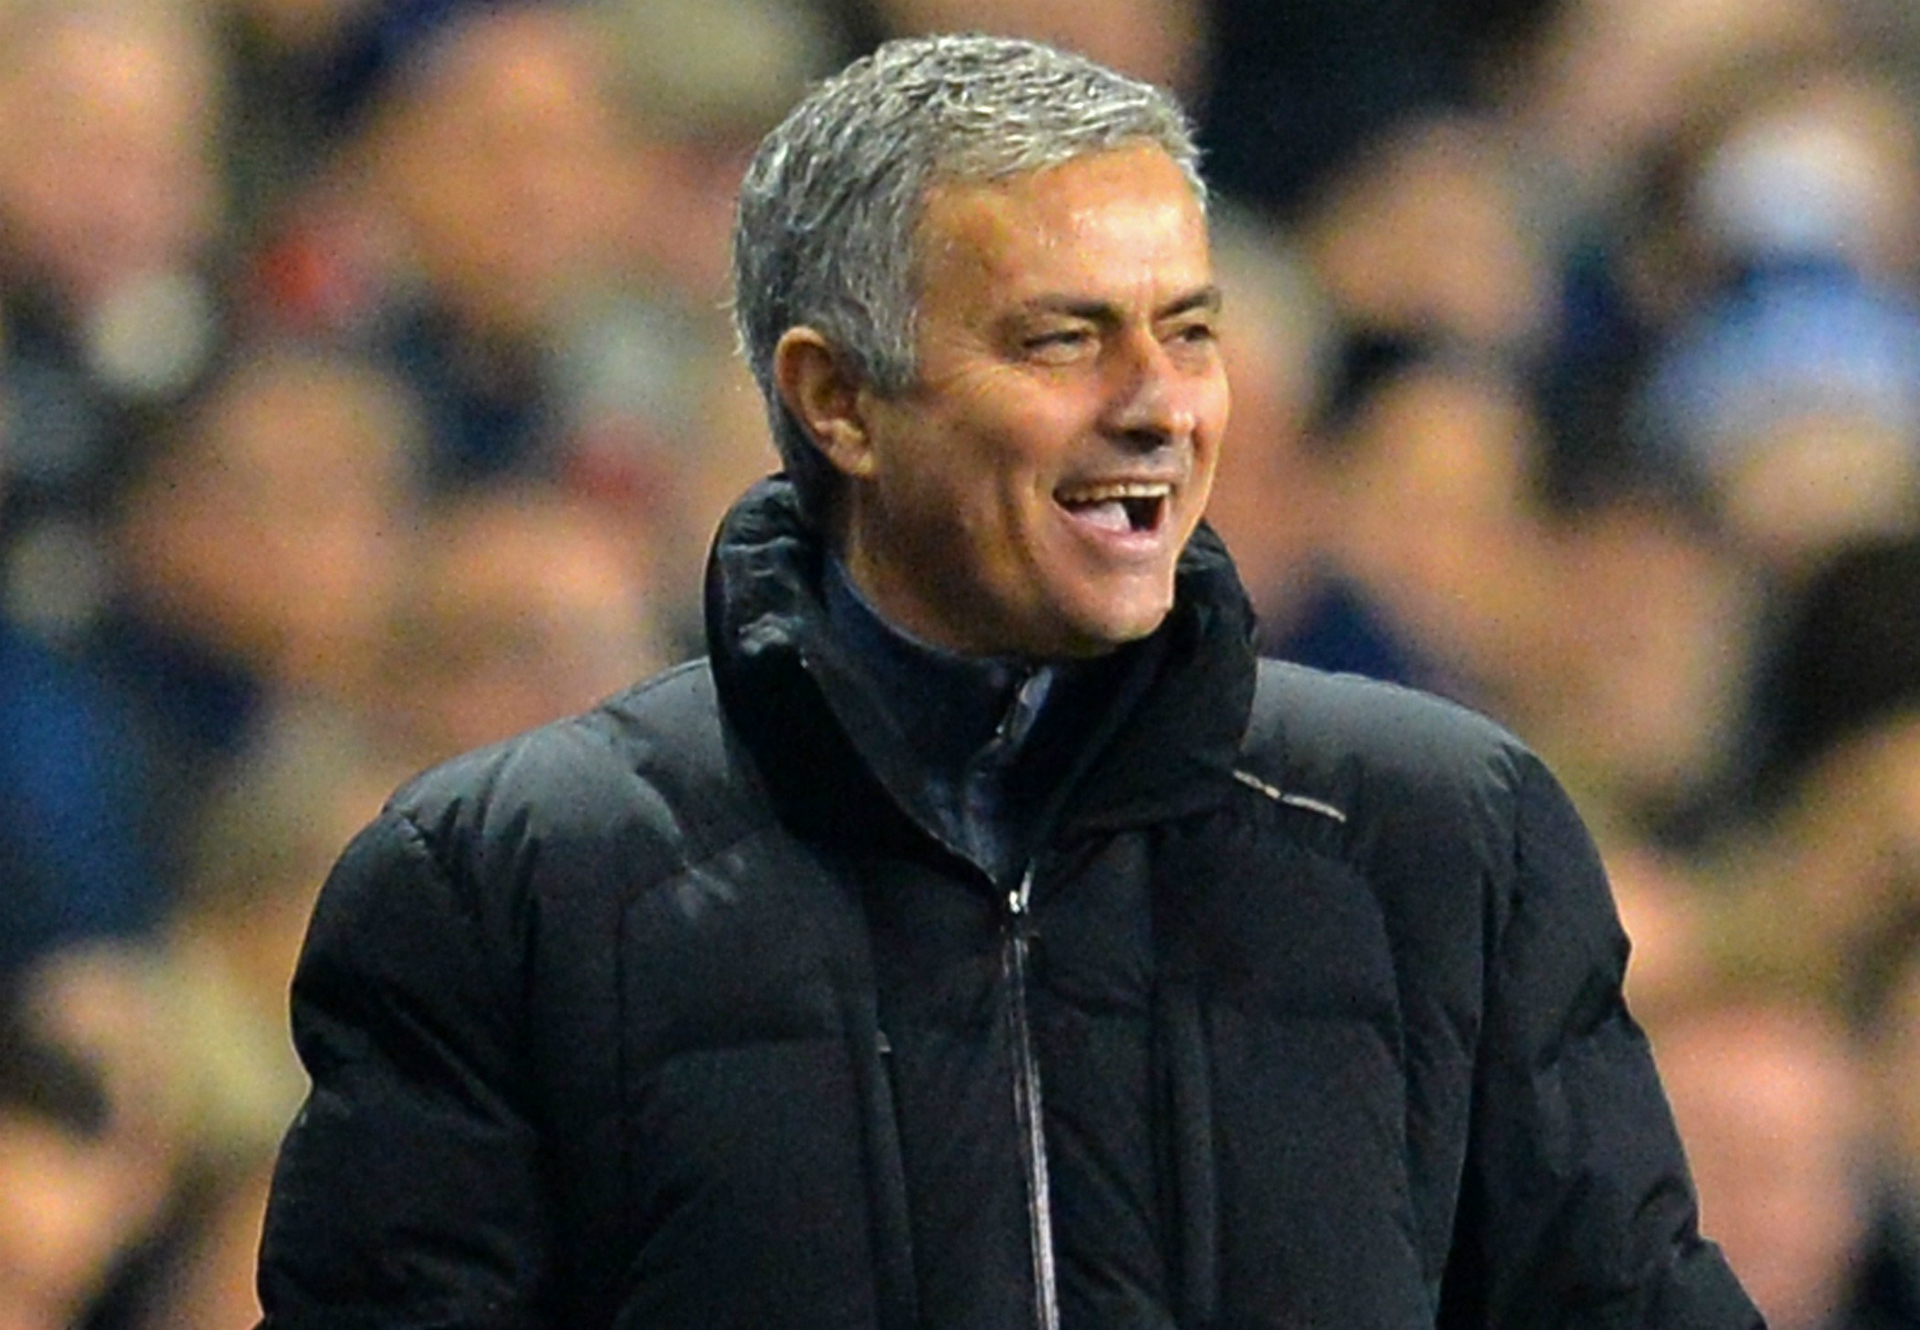 'Mourinho will try to bring the heat' - Blanc warns PSG not to rise to Chelsea provocation